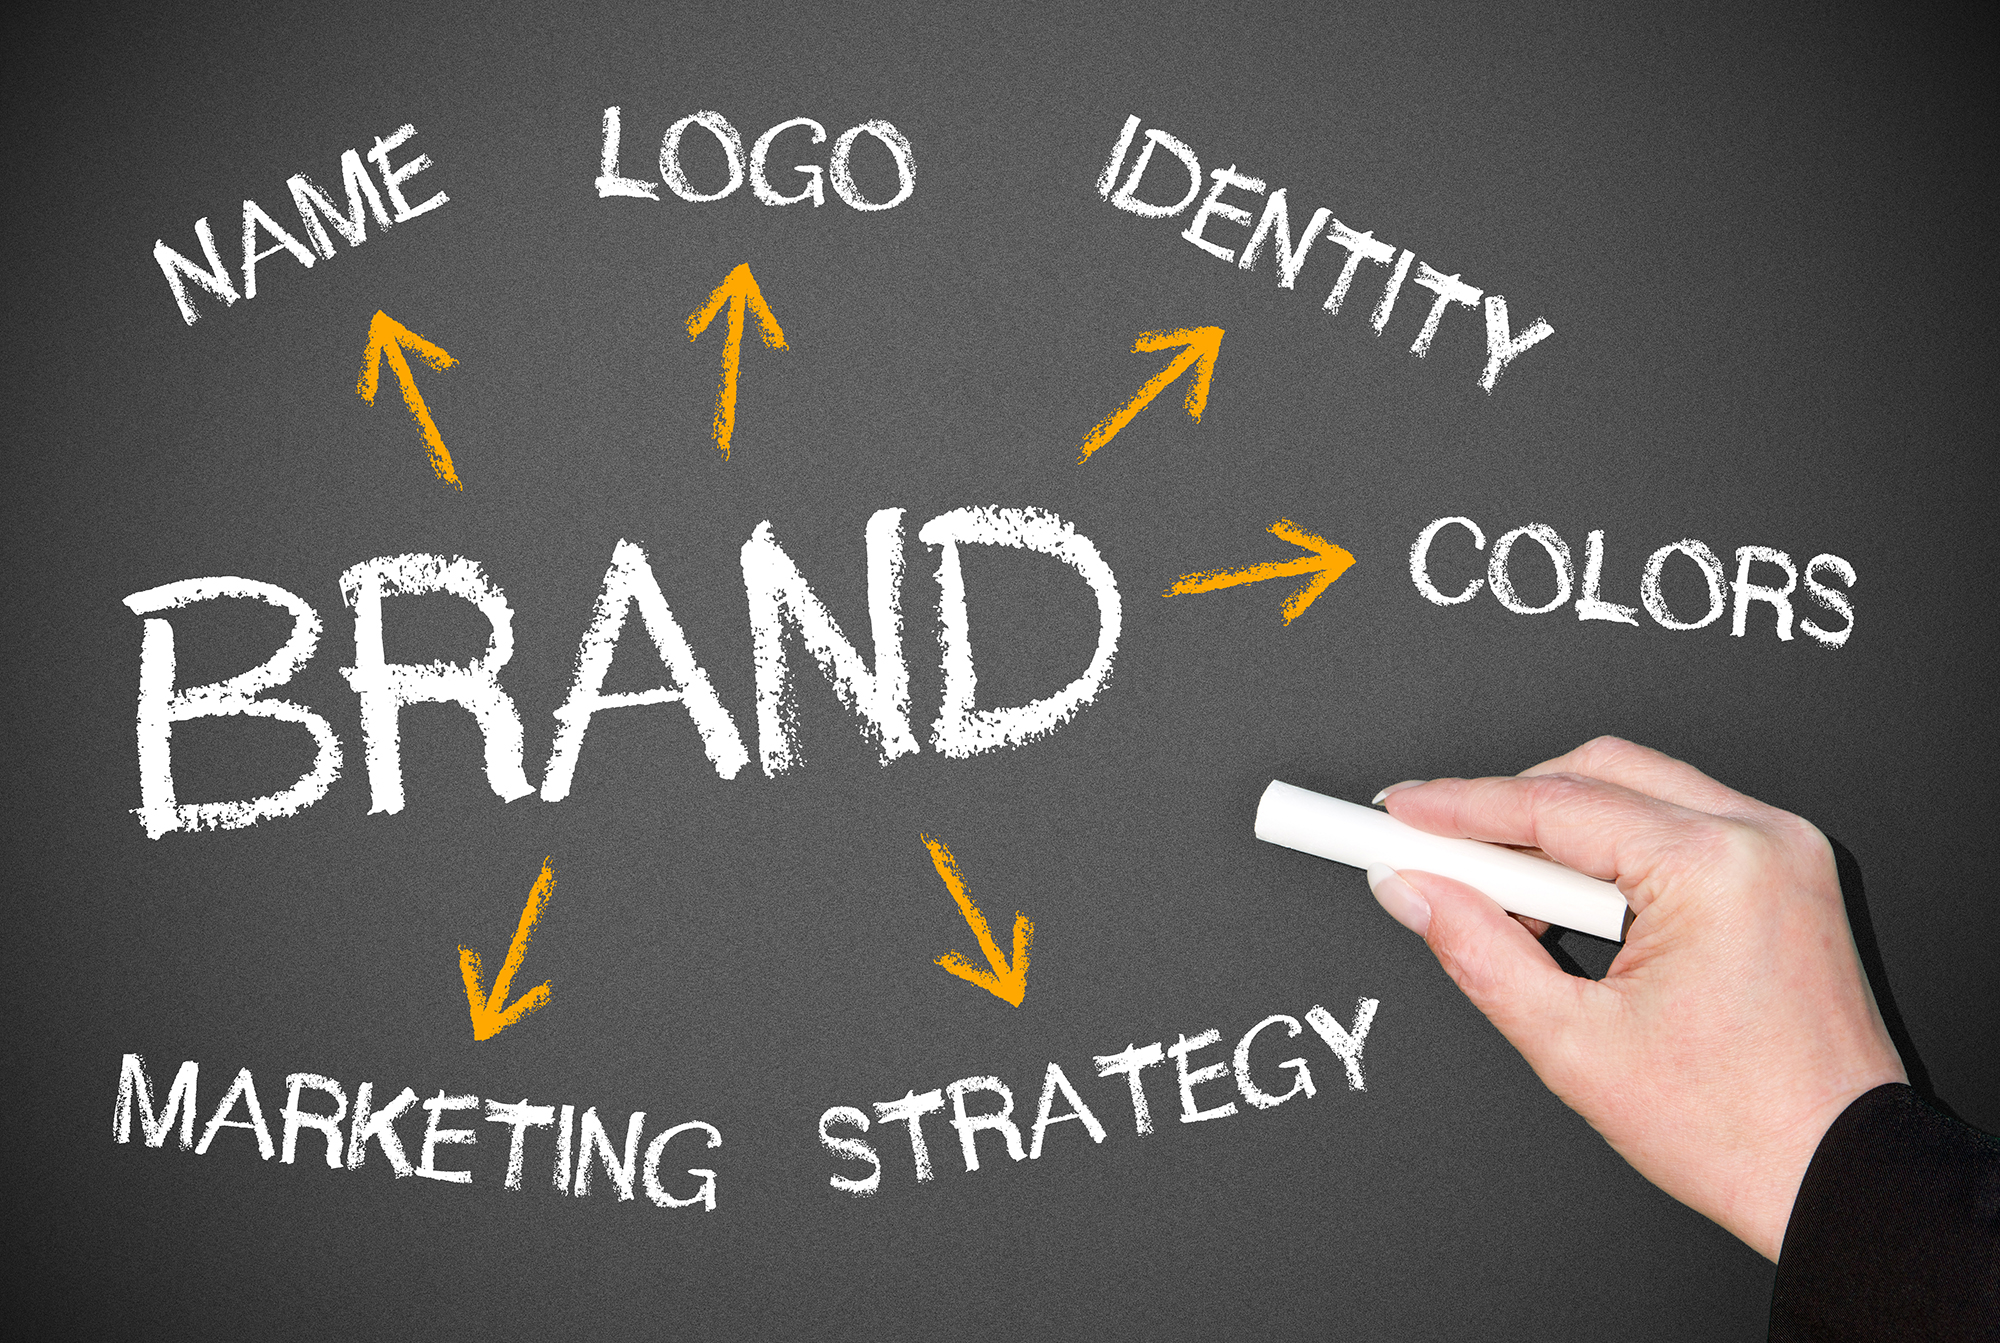 Marketing and brand